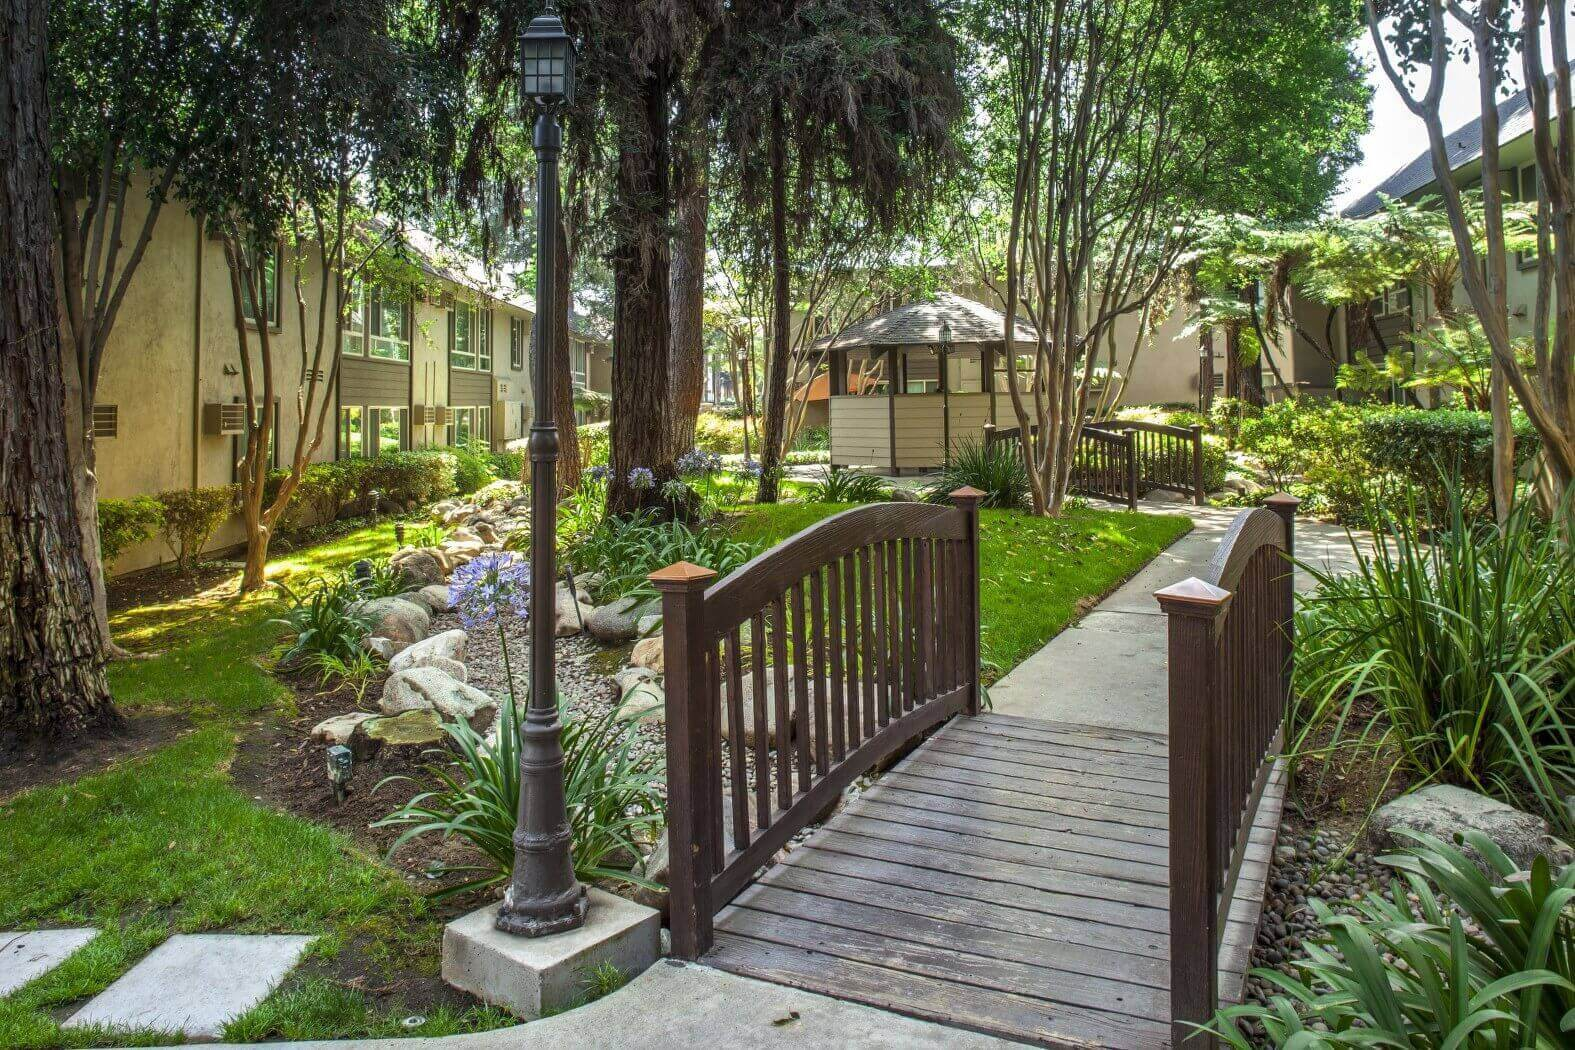 Apartments Near Whittier Hills at Hacienda Heights for Whittier College Students in Whittier, CA